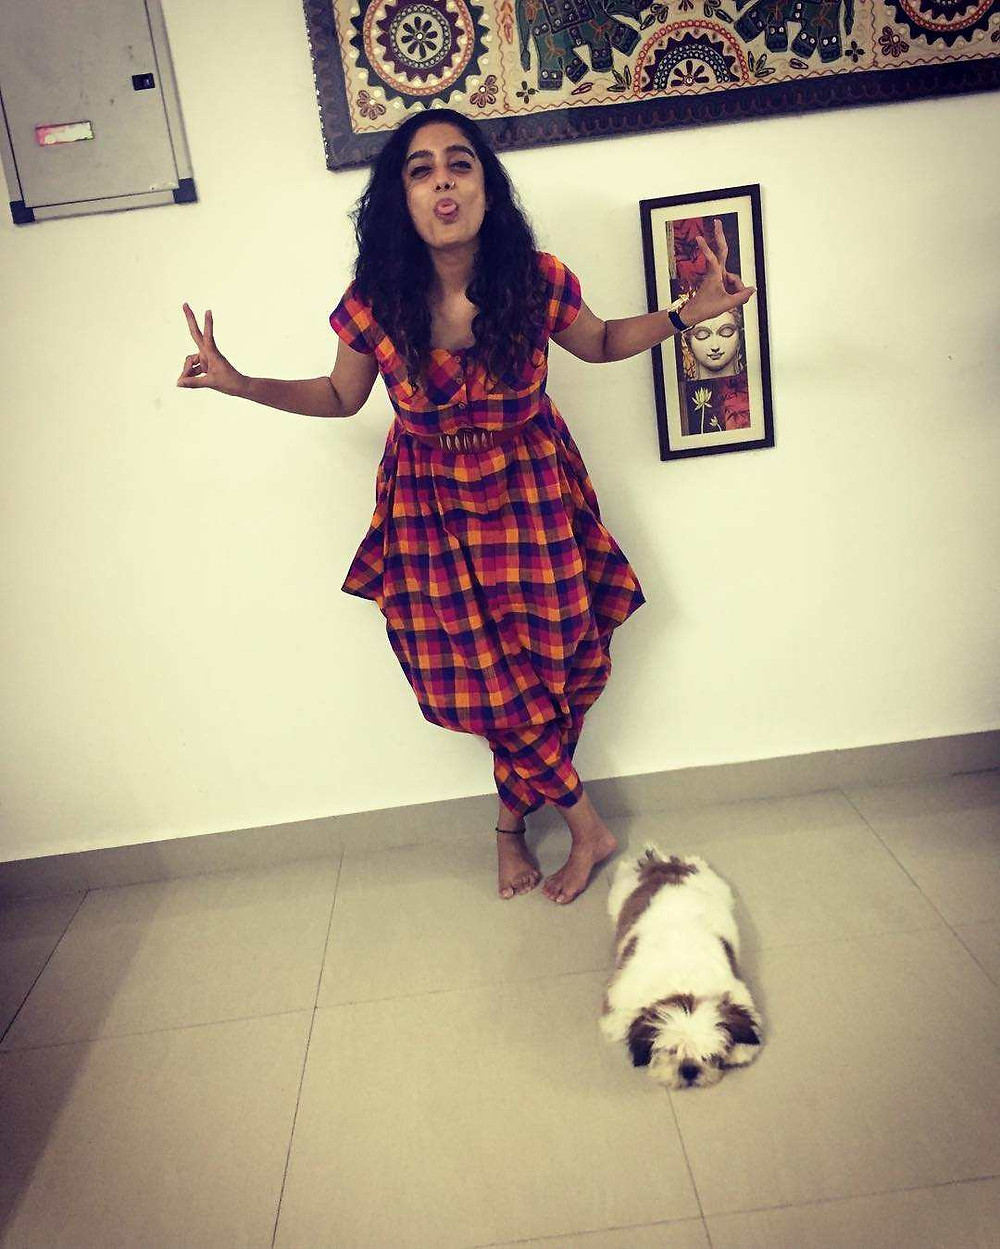 Abhirami Venkatachalam Posing With Her pet Dig